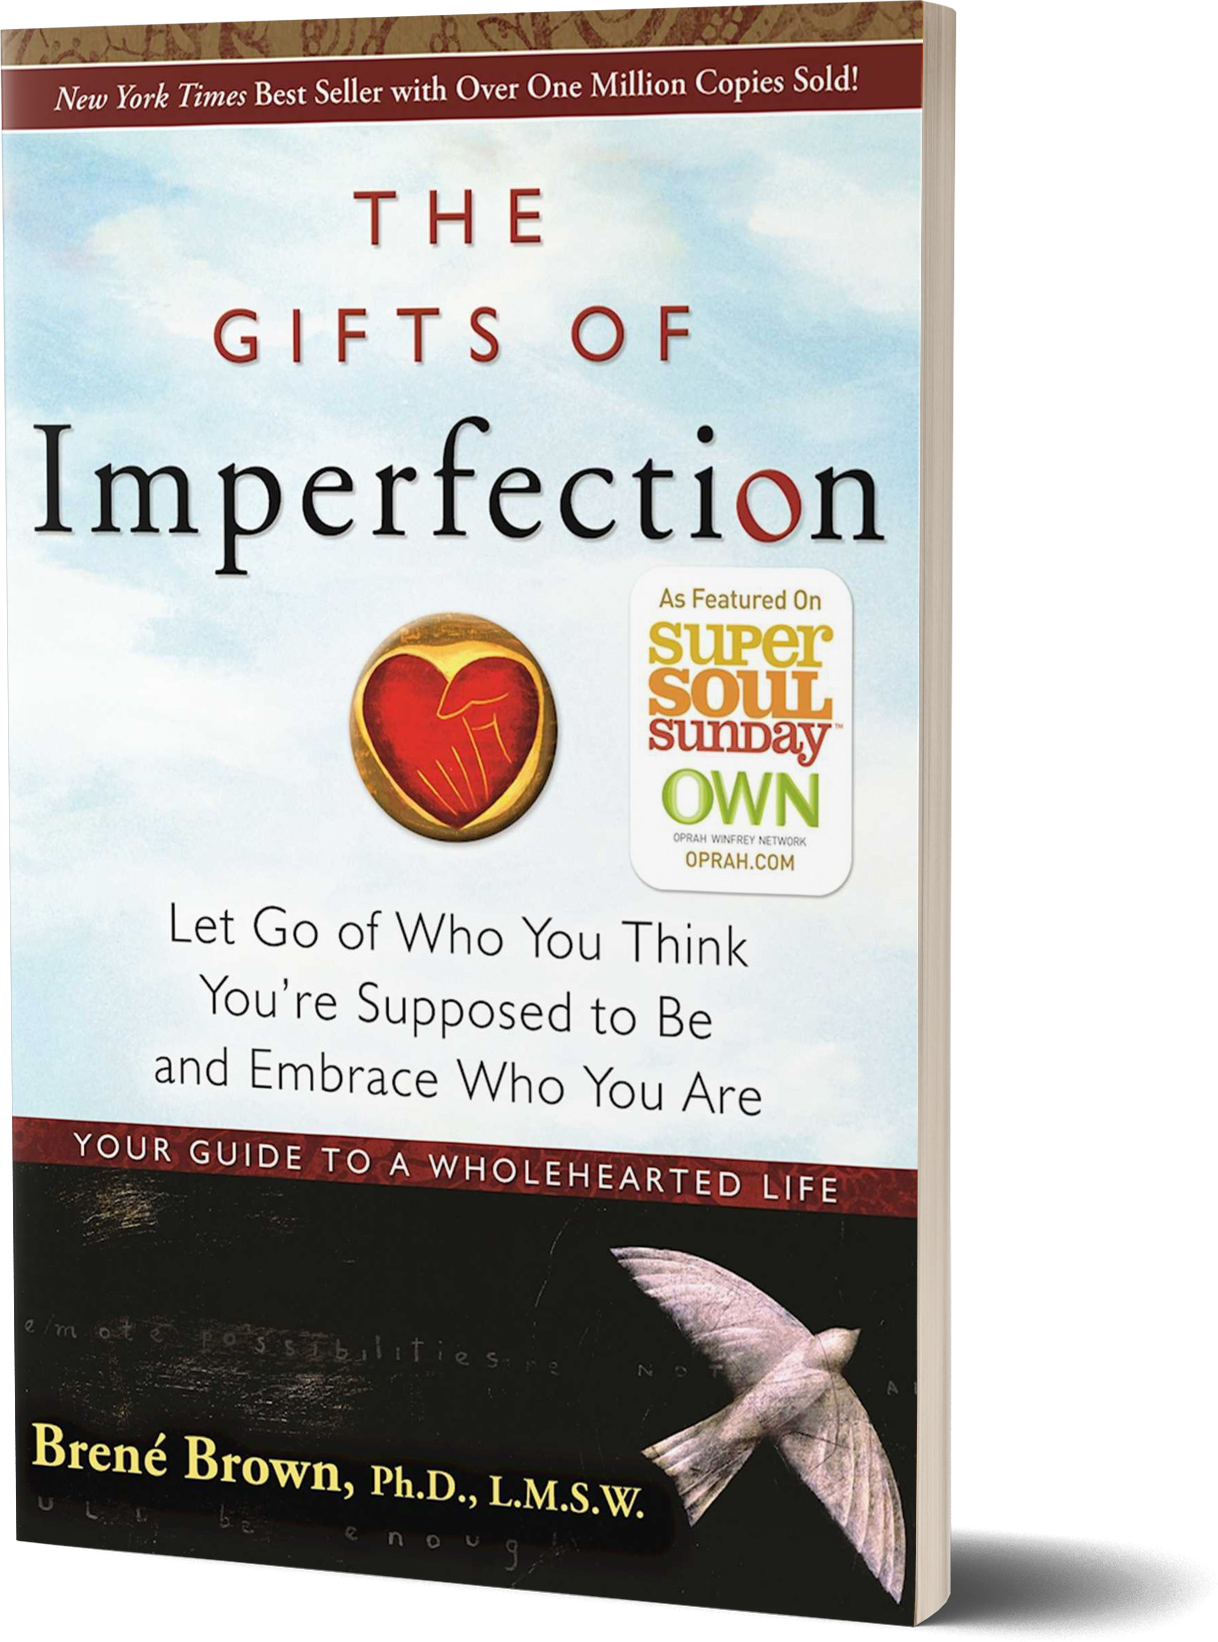 the gift of imperfection.png